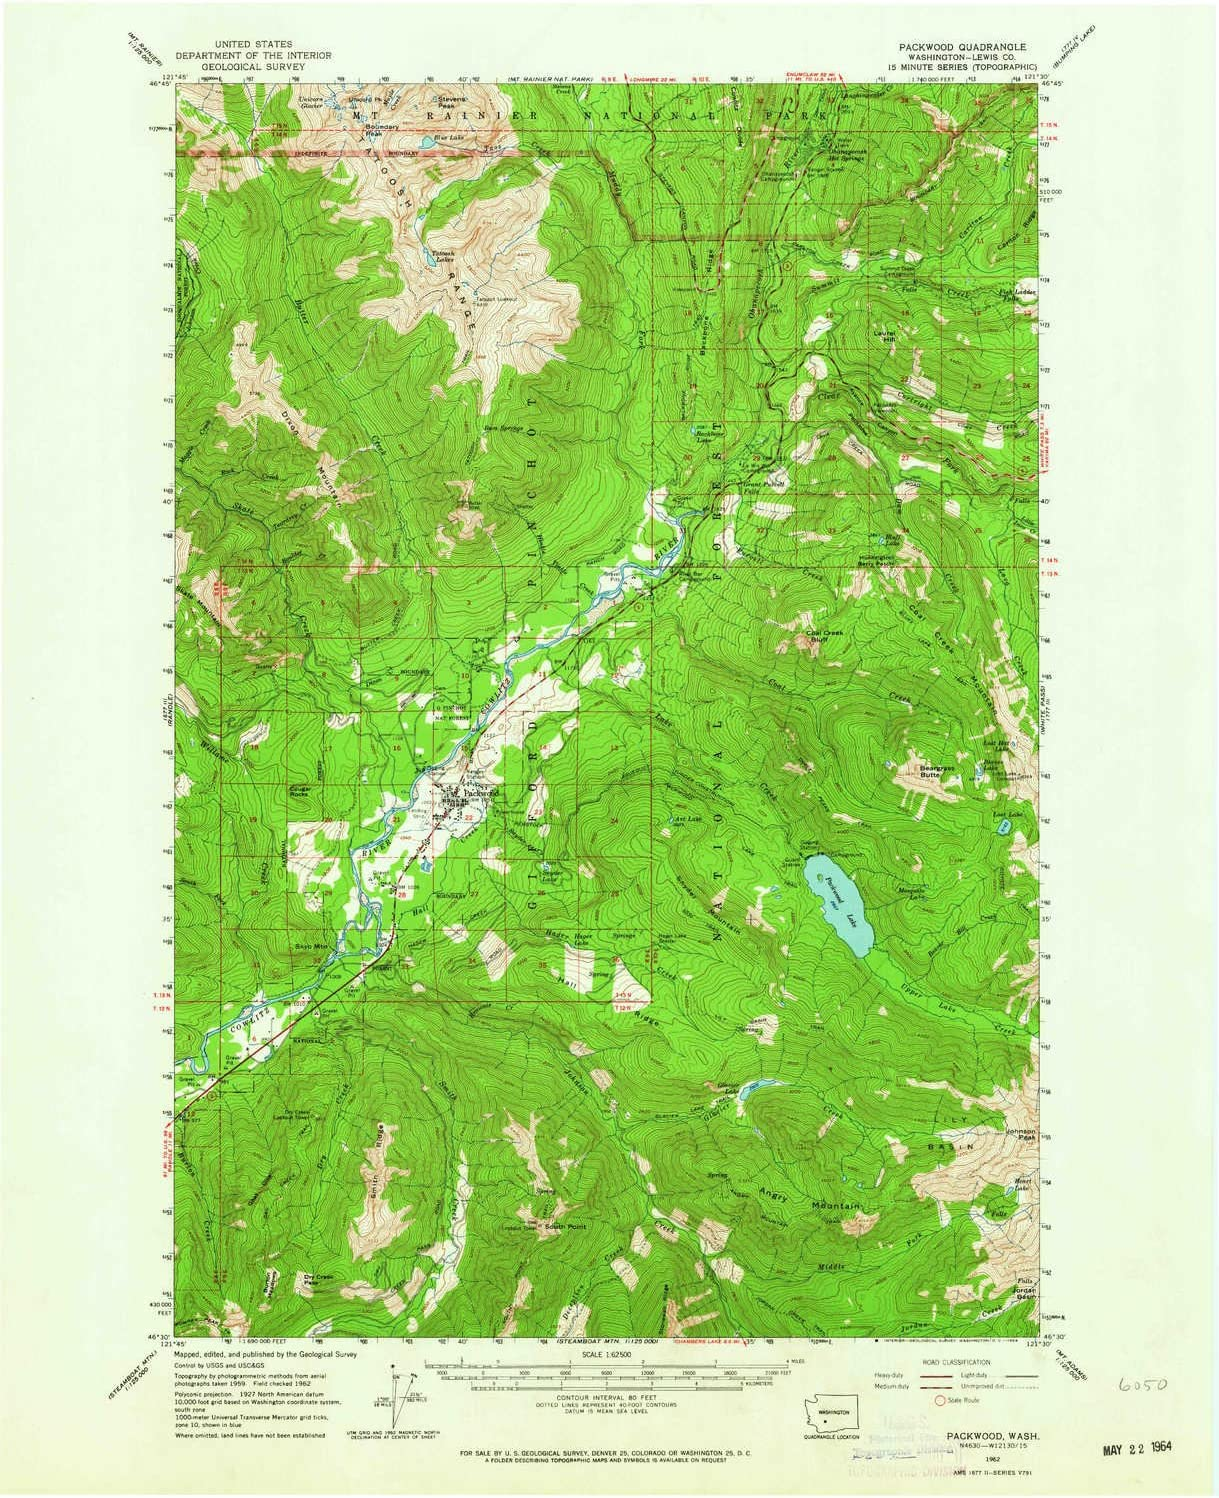 YellowMaps Packwood WA topo map X 1:62500 Minute Scale Free Shipping New 15 Sale SALE% OFF